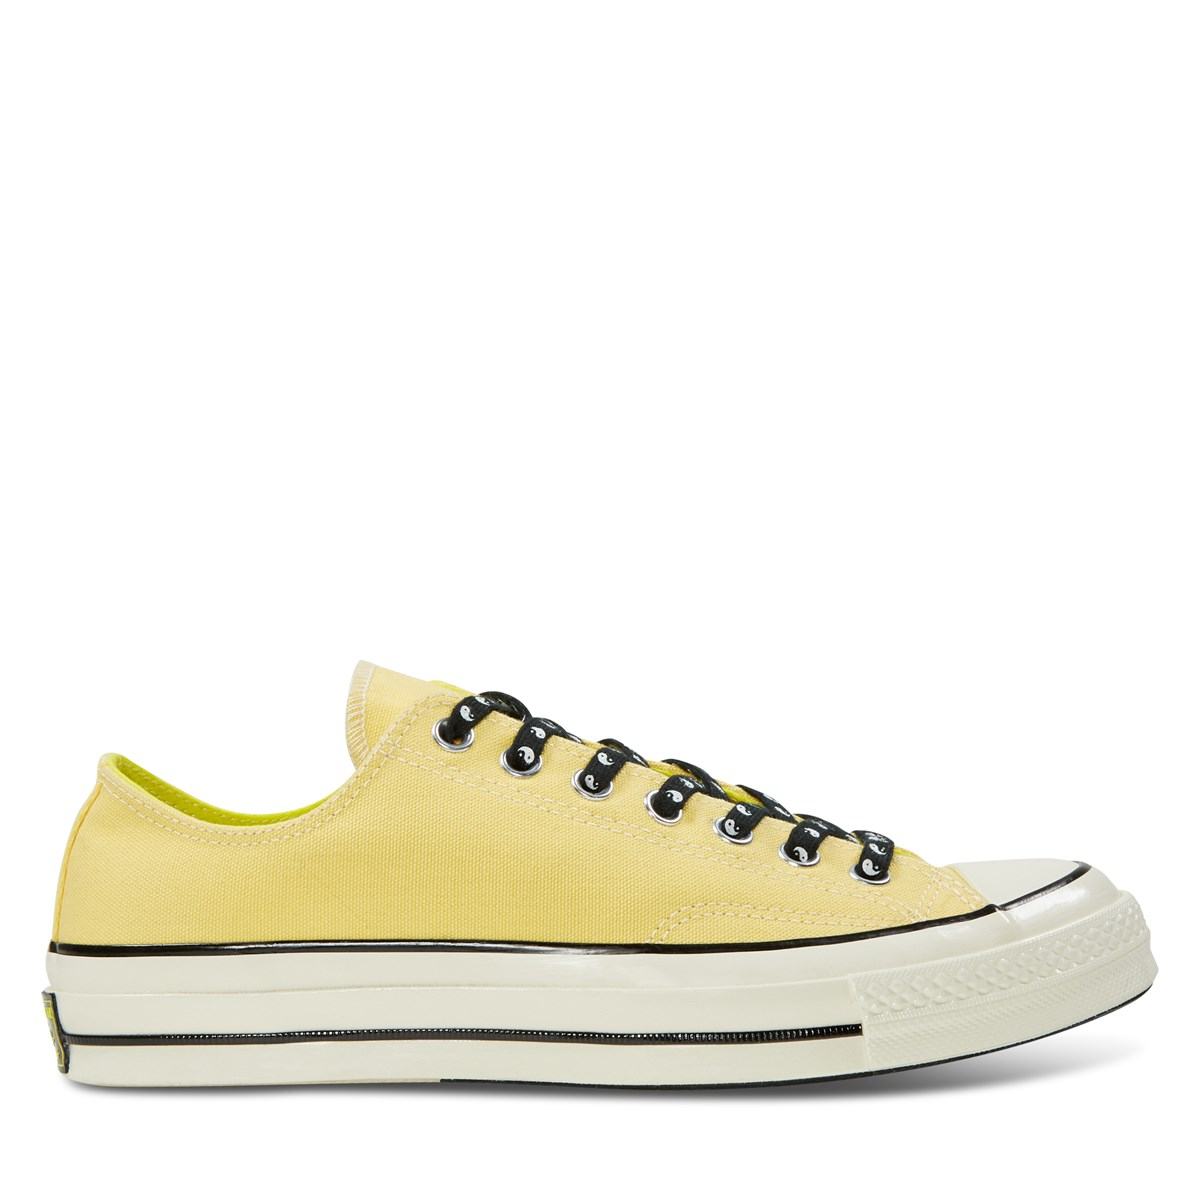 Men's Chuck 70 Vintage OX Sneakers in Yellow